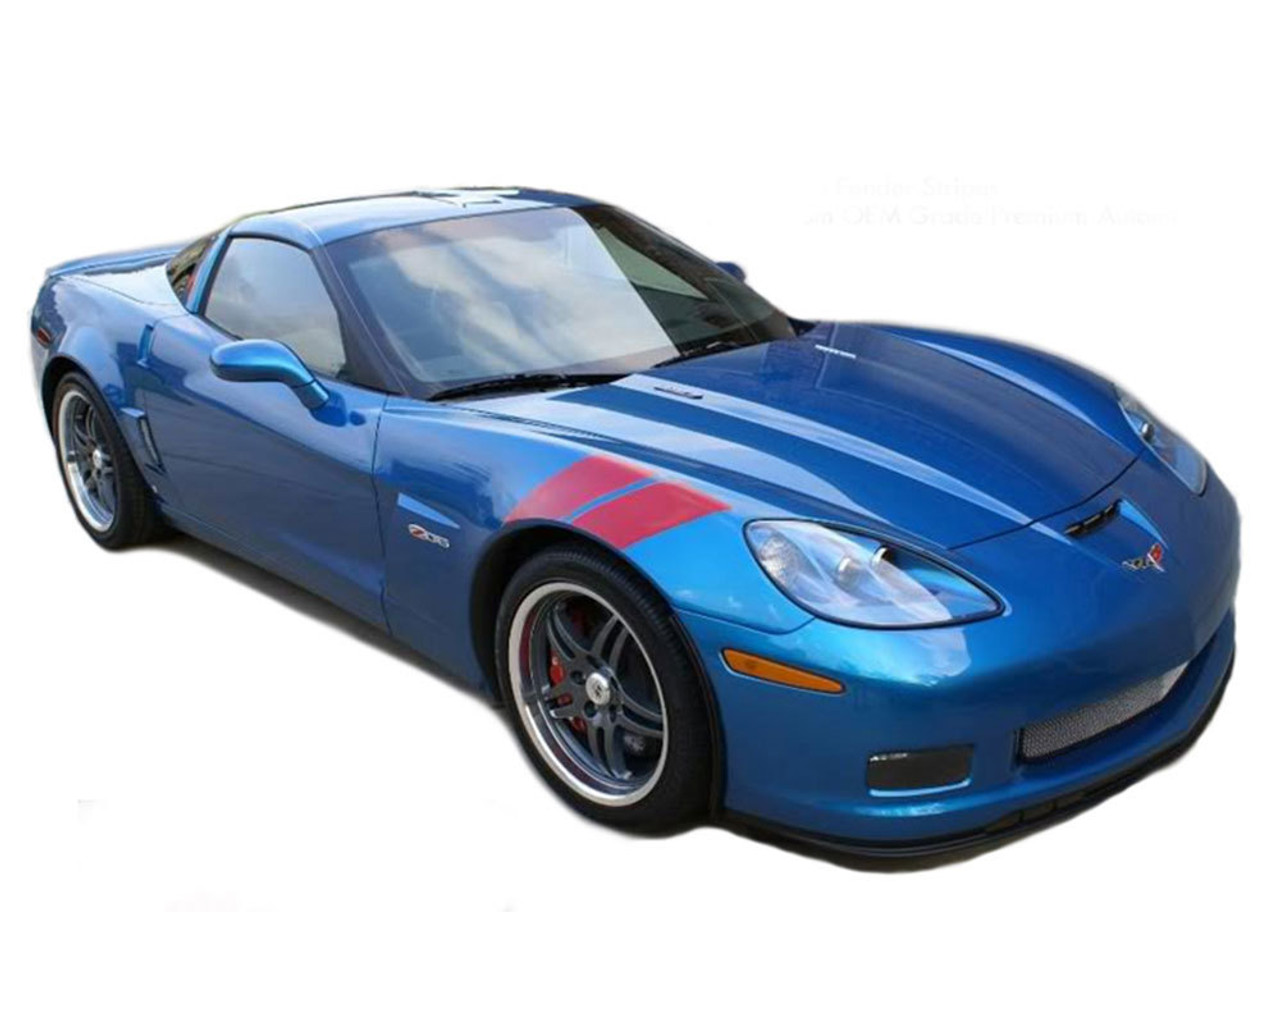 Chevy Corvette C6 | 2005-2013